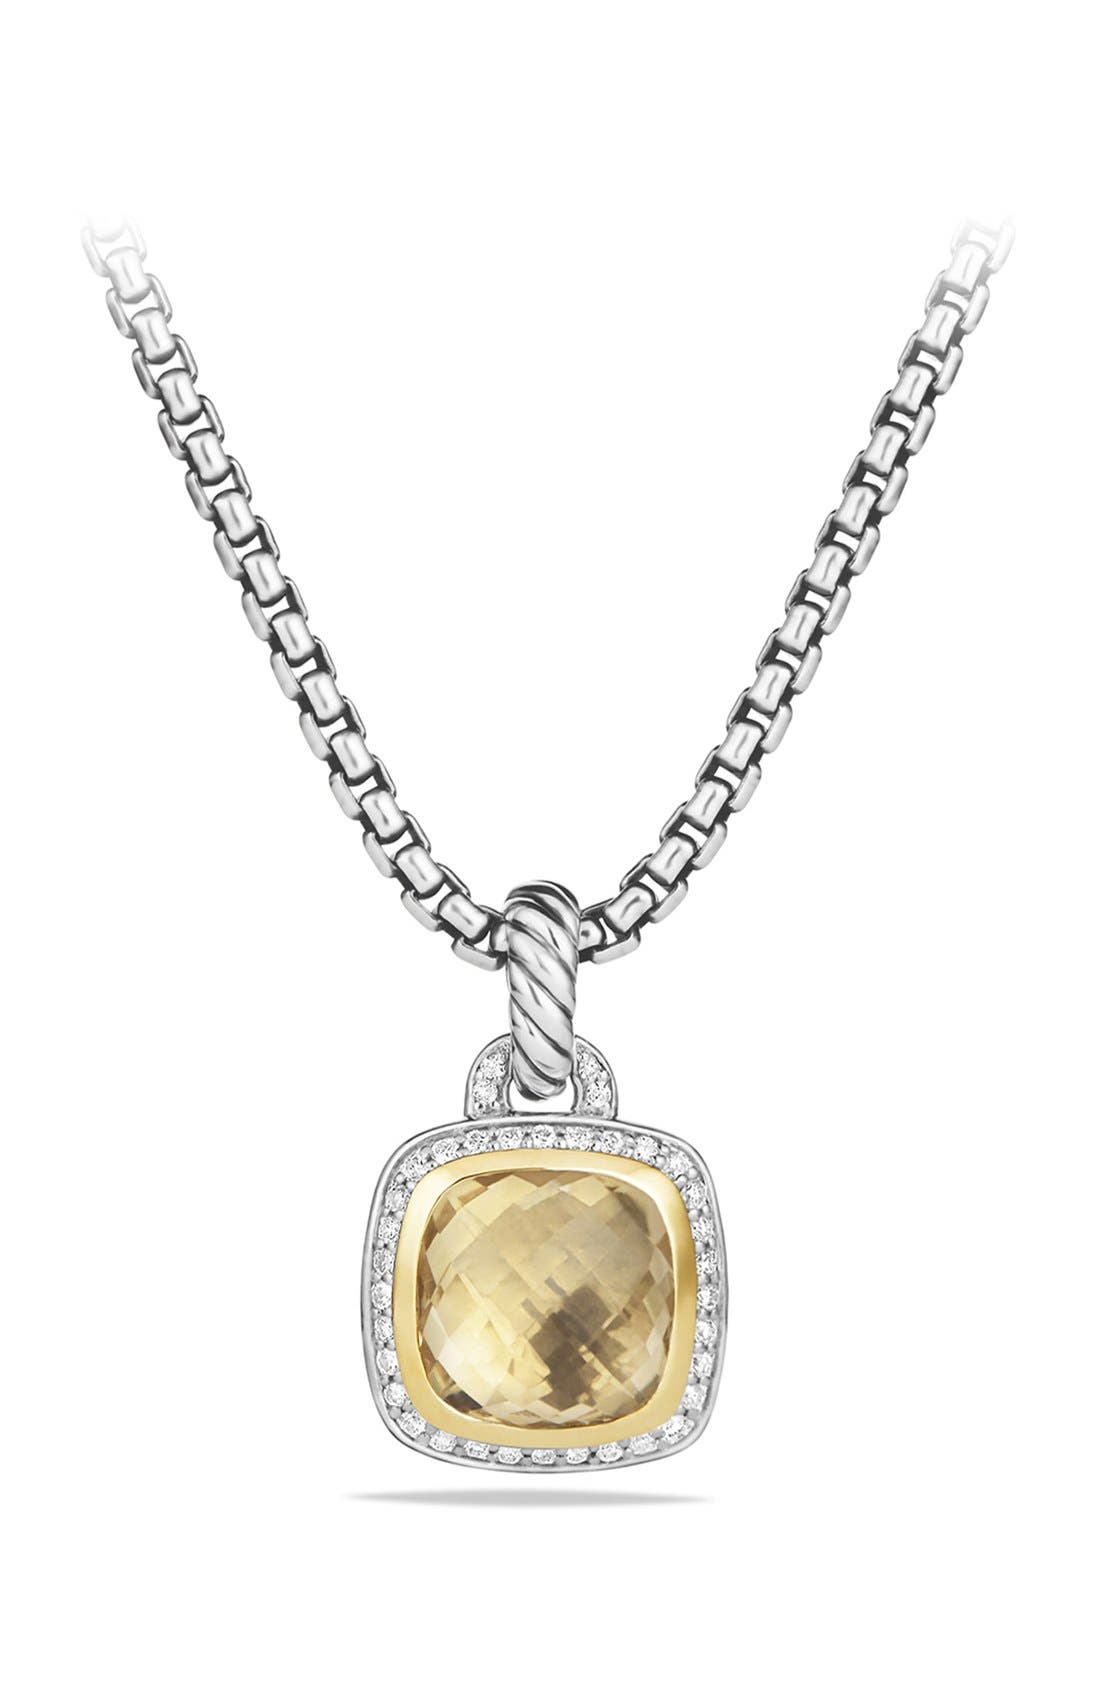 'Albion' Pendant with Diamonds and 18K Gold,                             Main thumbnail 1, color,                             Champagne Citrine